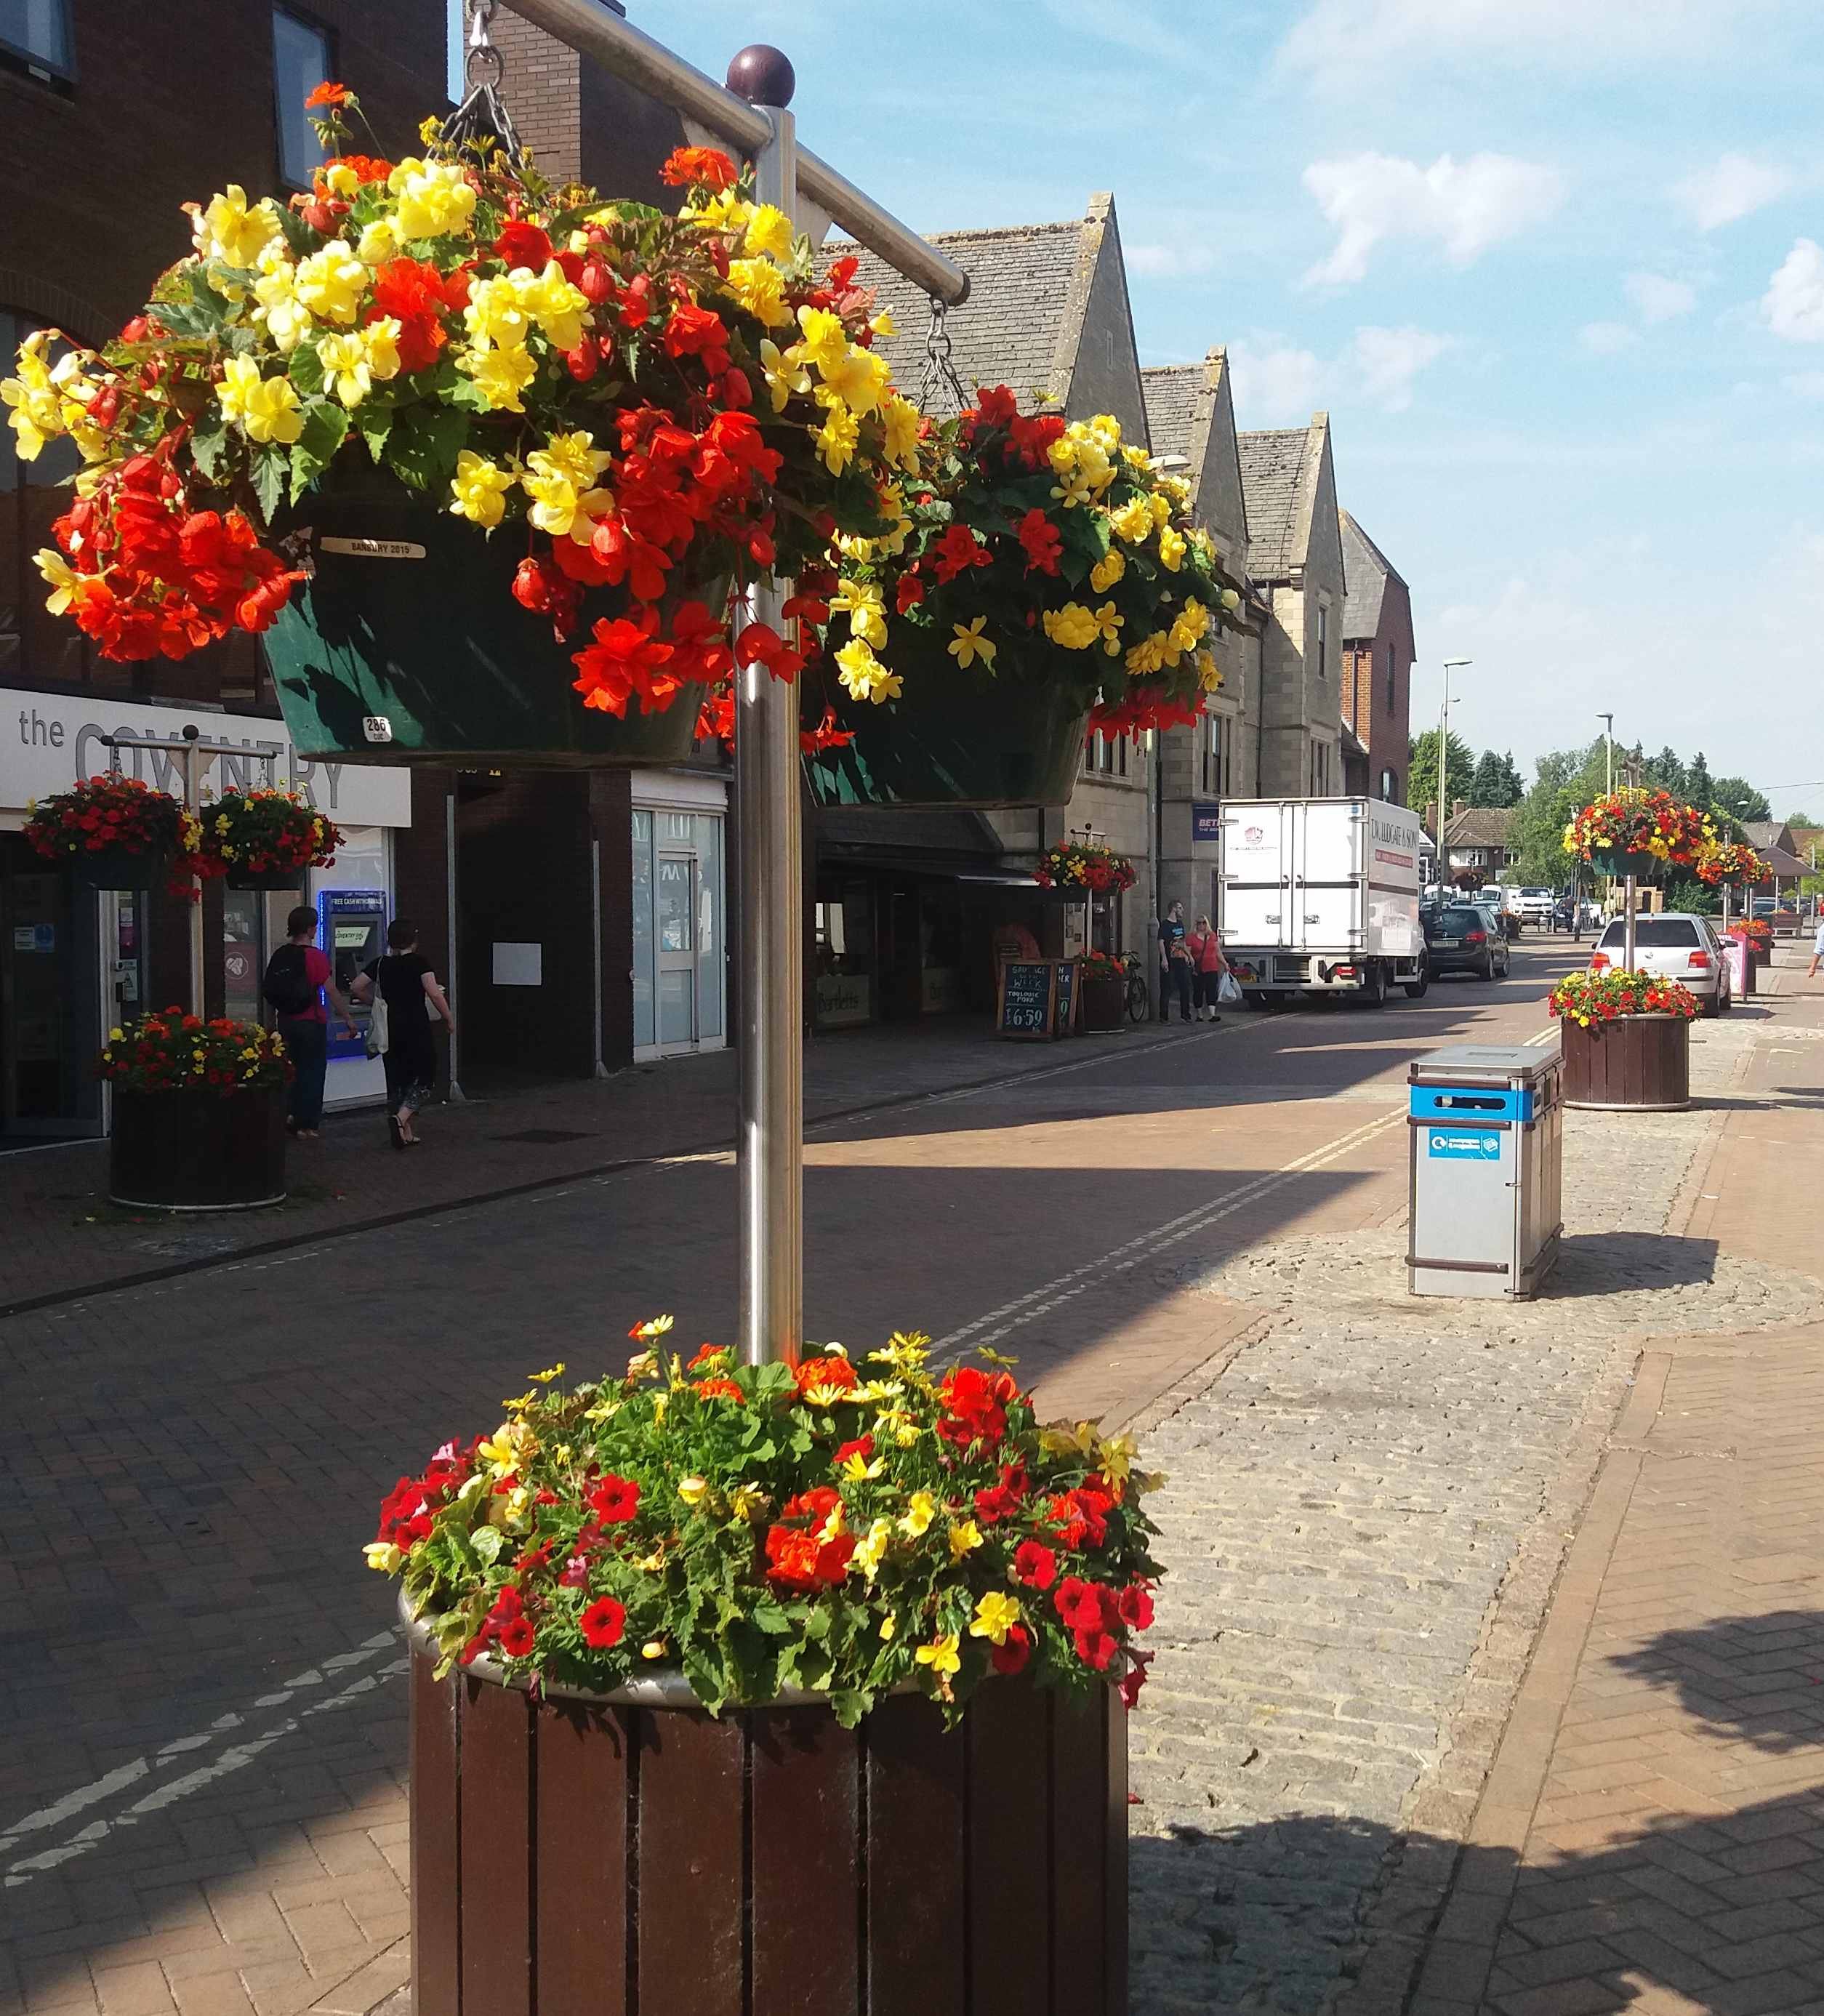 high street with yellow and red flowers